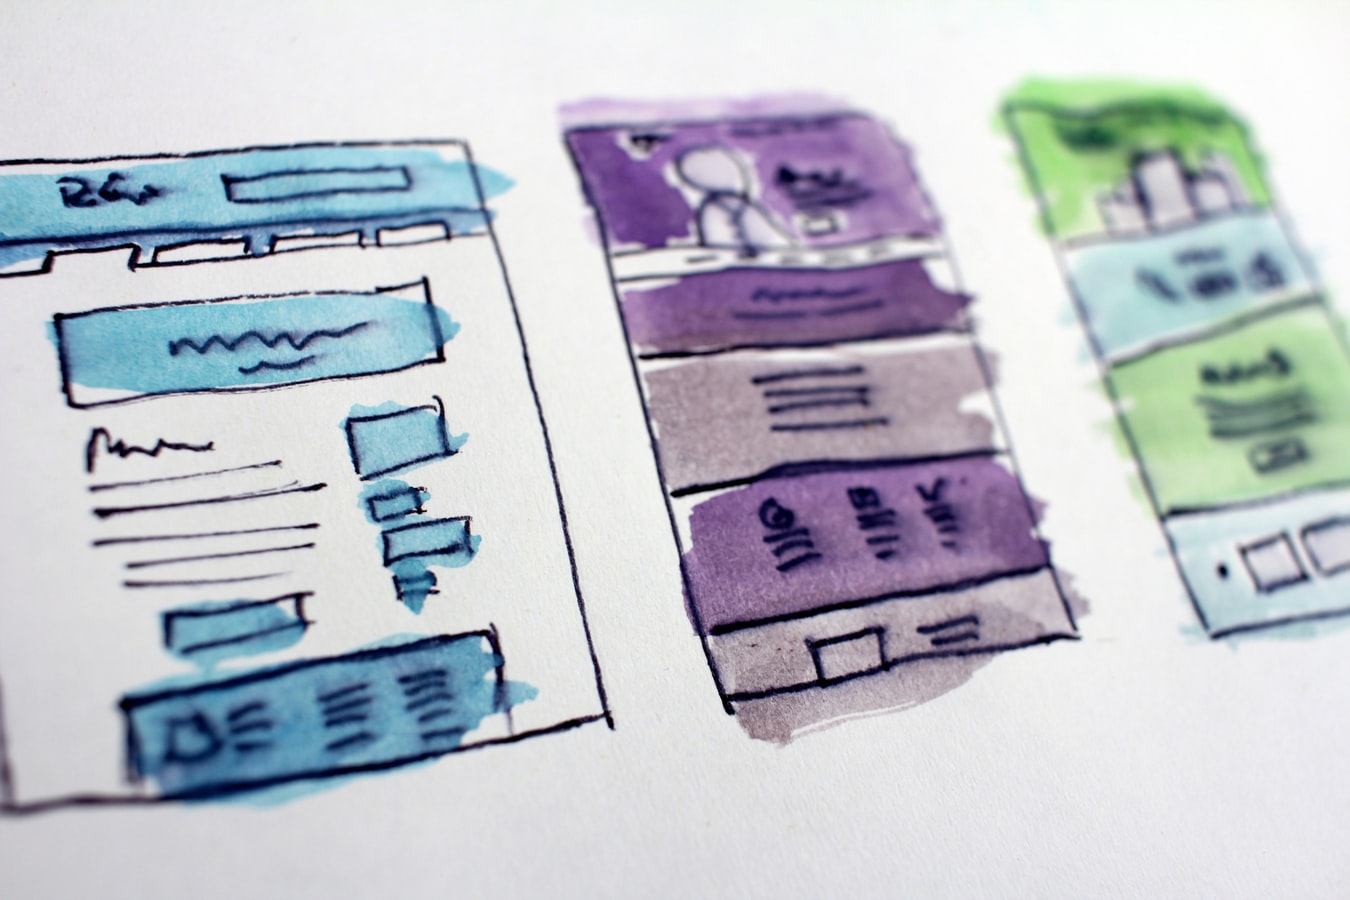 Web Design and Technologies